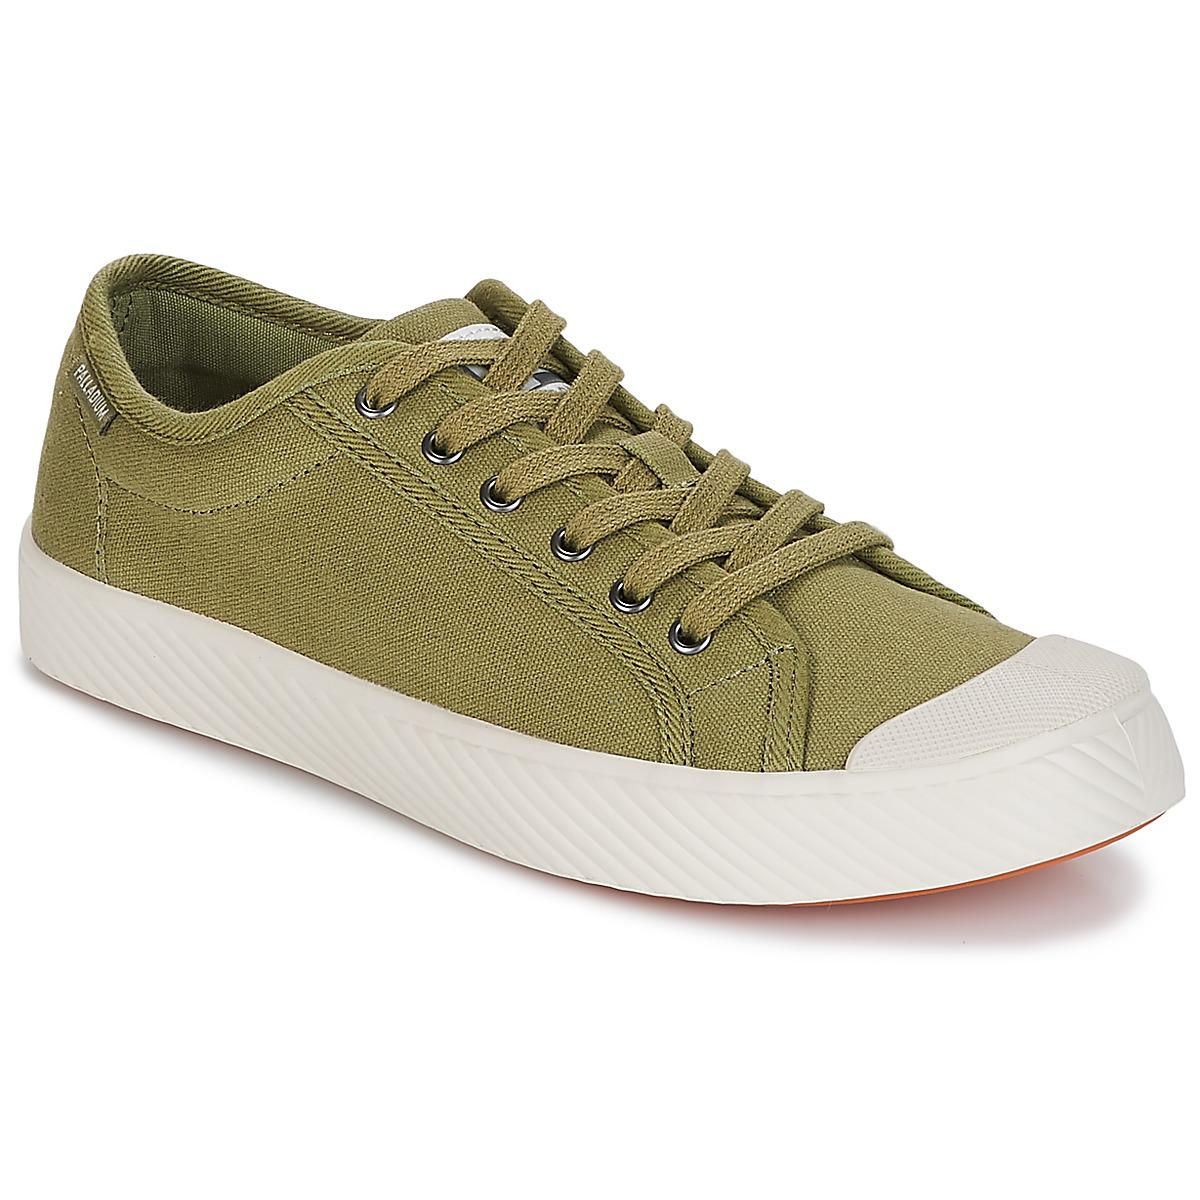 7984db592d Palladium Pallaphoenix Og Cvs Women s Shoes (trainers) In Green in ...